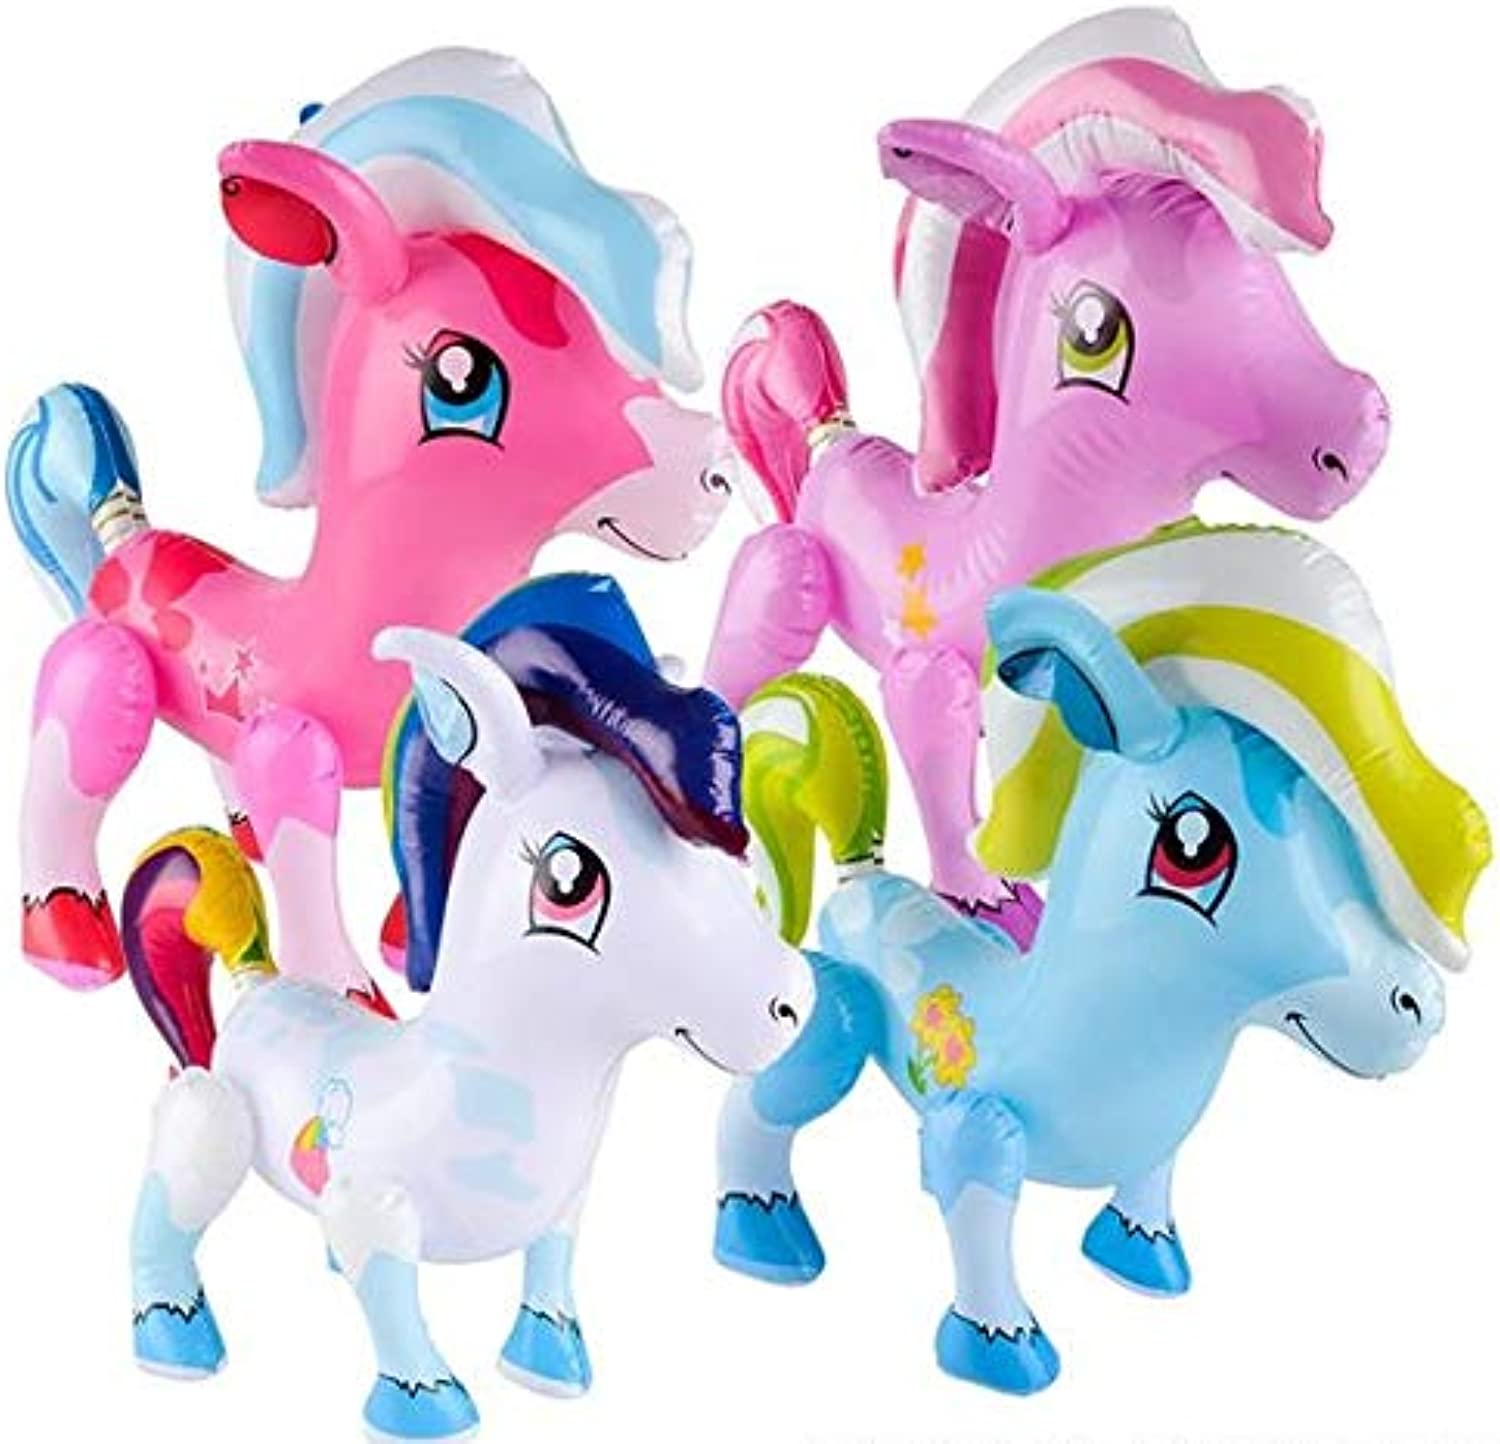 Rhode Island Novelty Large Inflatable Ponies   Party Favor   Decoration   Pack of 12   Assorted colors